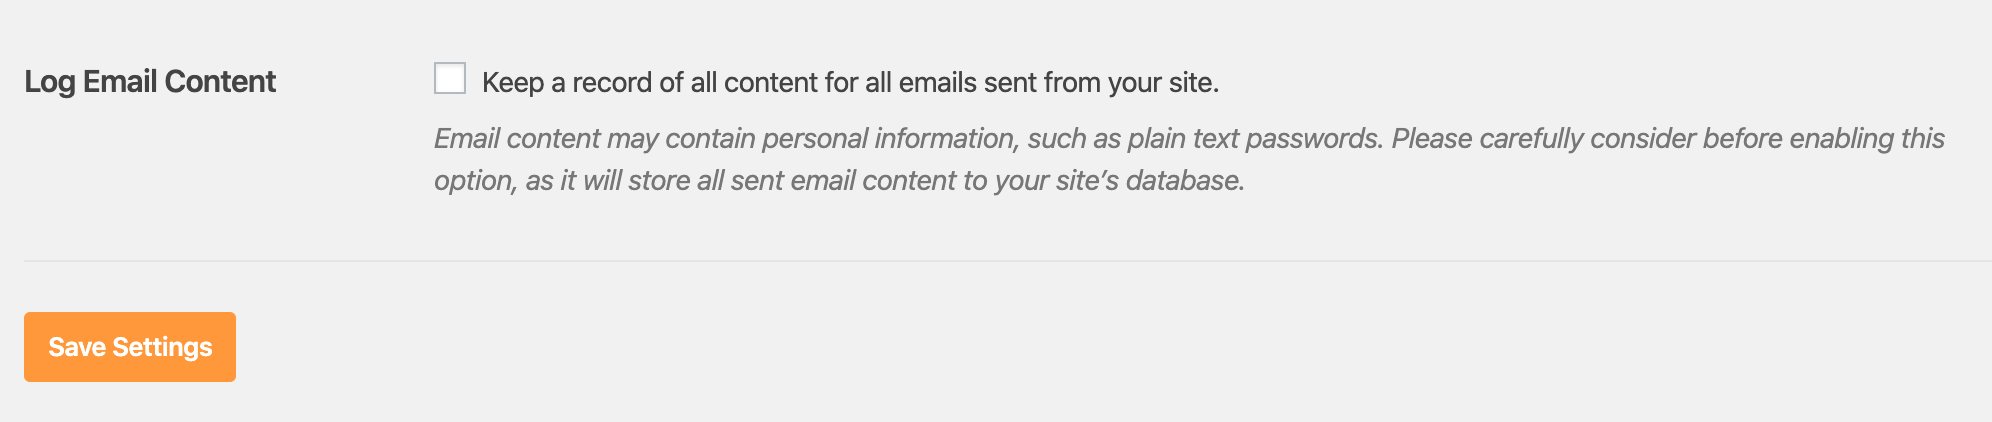 Log Email Content